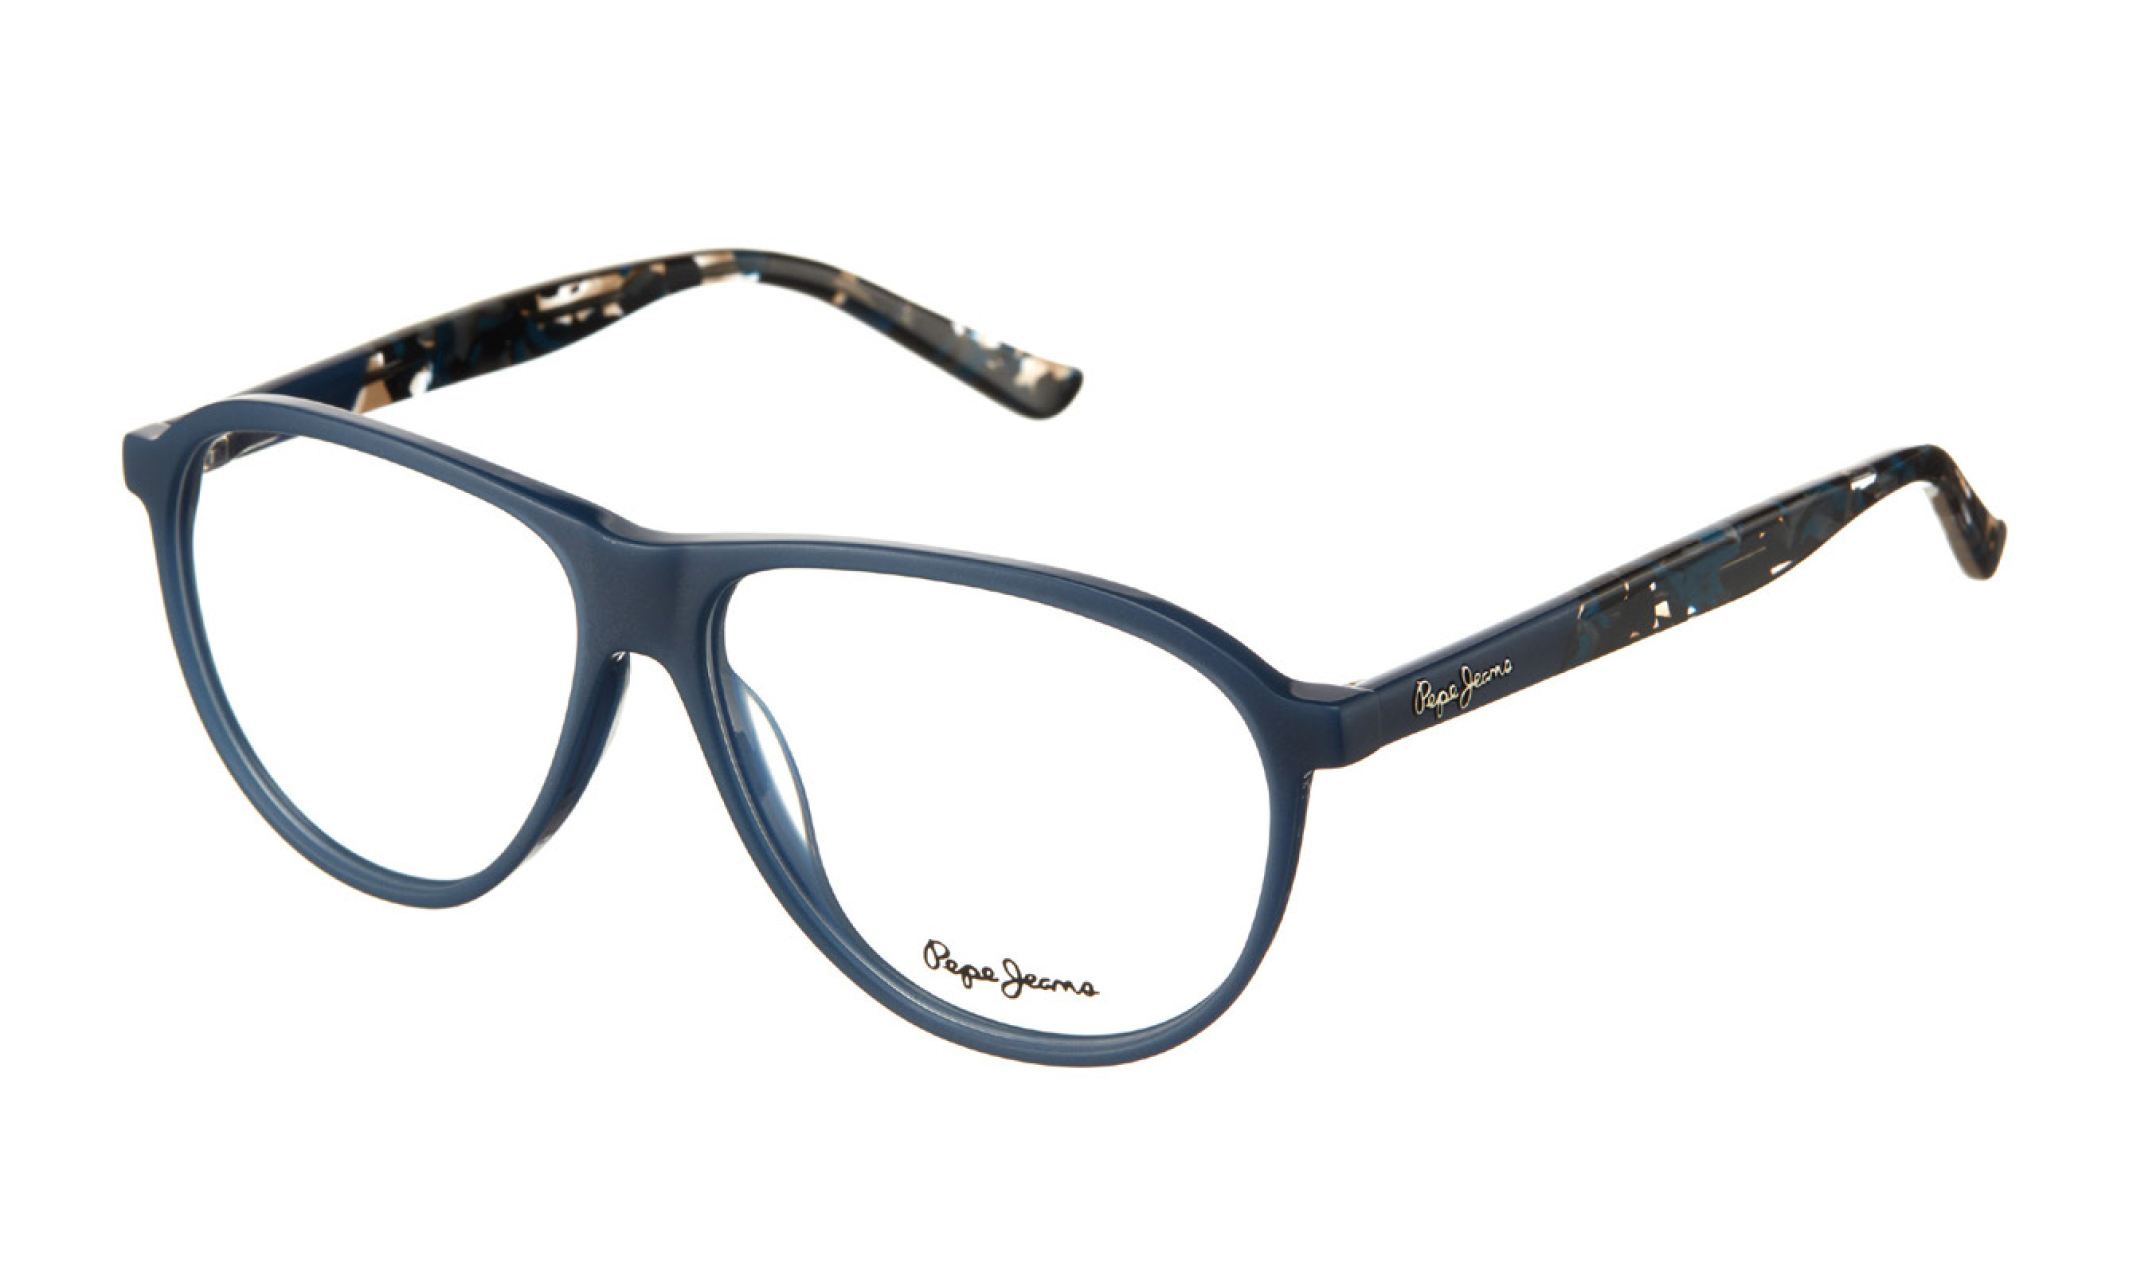 Pepe Jeans optical 2